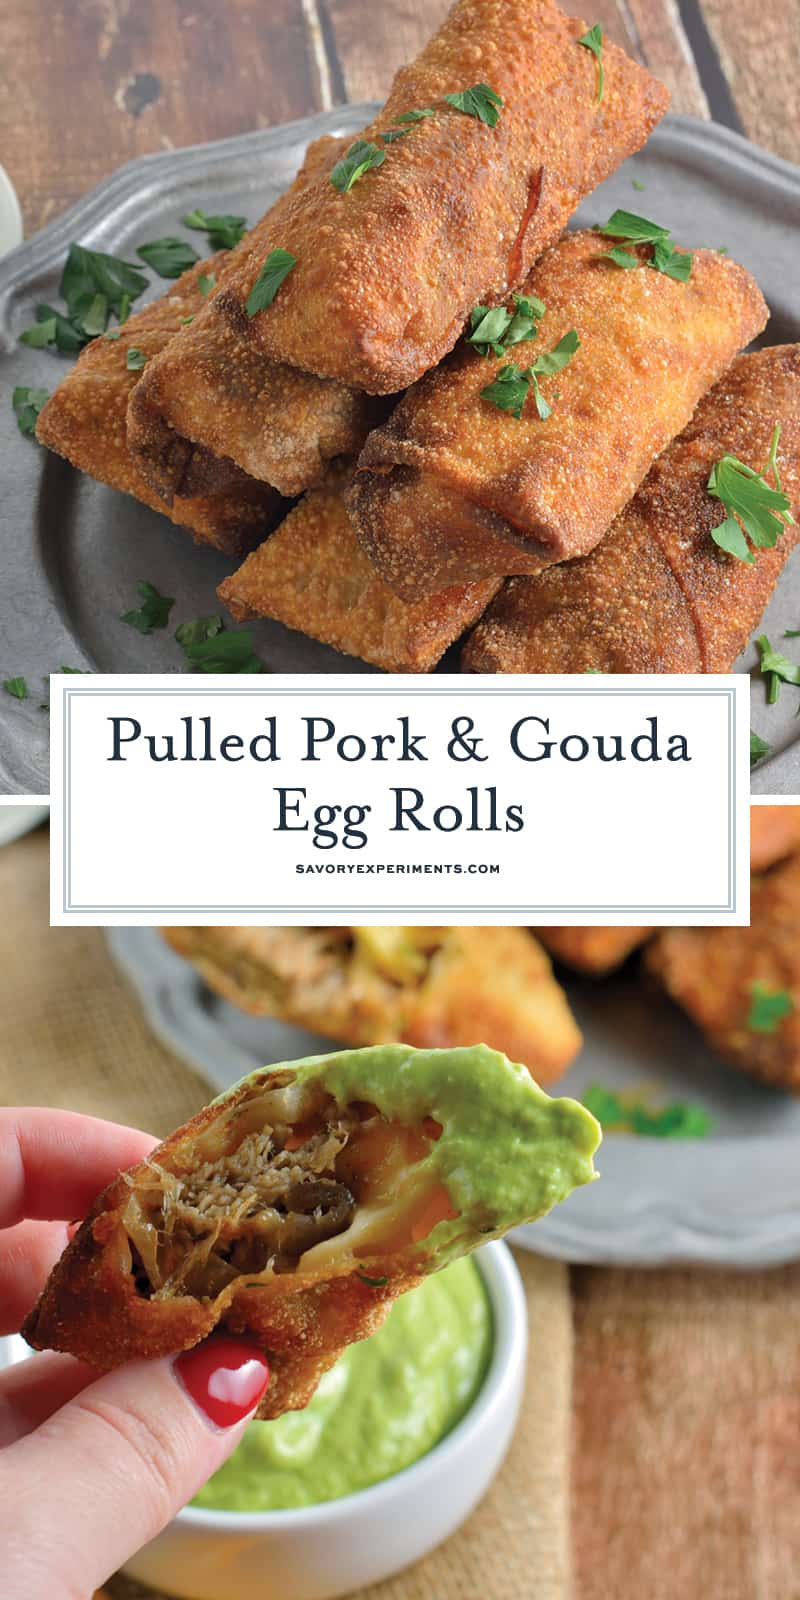 Pulled Pork and Gouda Egg Rolls are succulent, sweet and zesty pulled pork wrapped in a crispy egg roll with silky smoked gouda cheese and served alongside Avocado Green Goddess Dressing. #homemadeeggrolls www.savoryexperiments.com